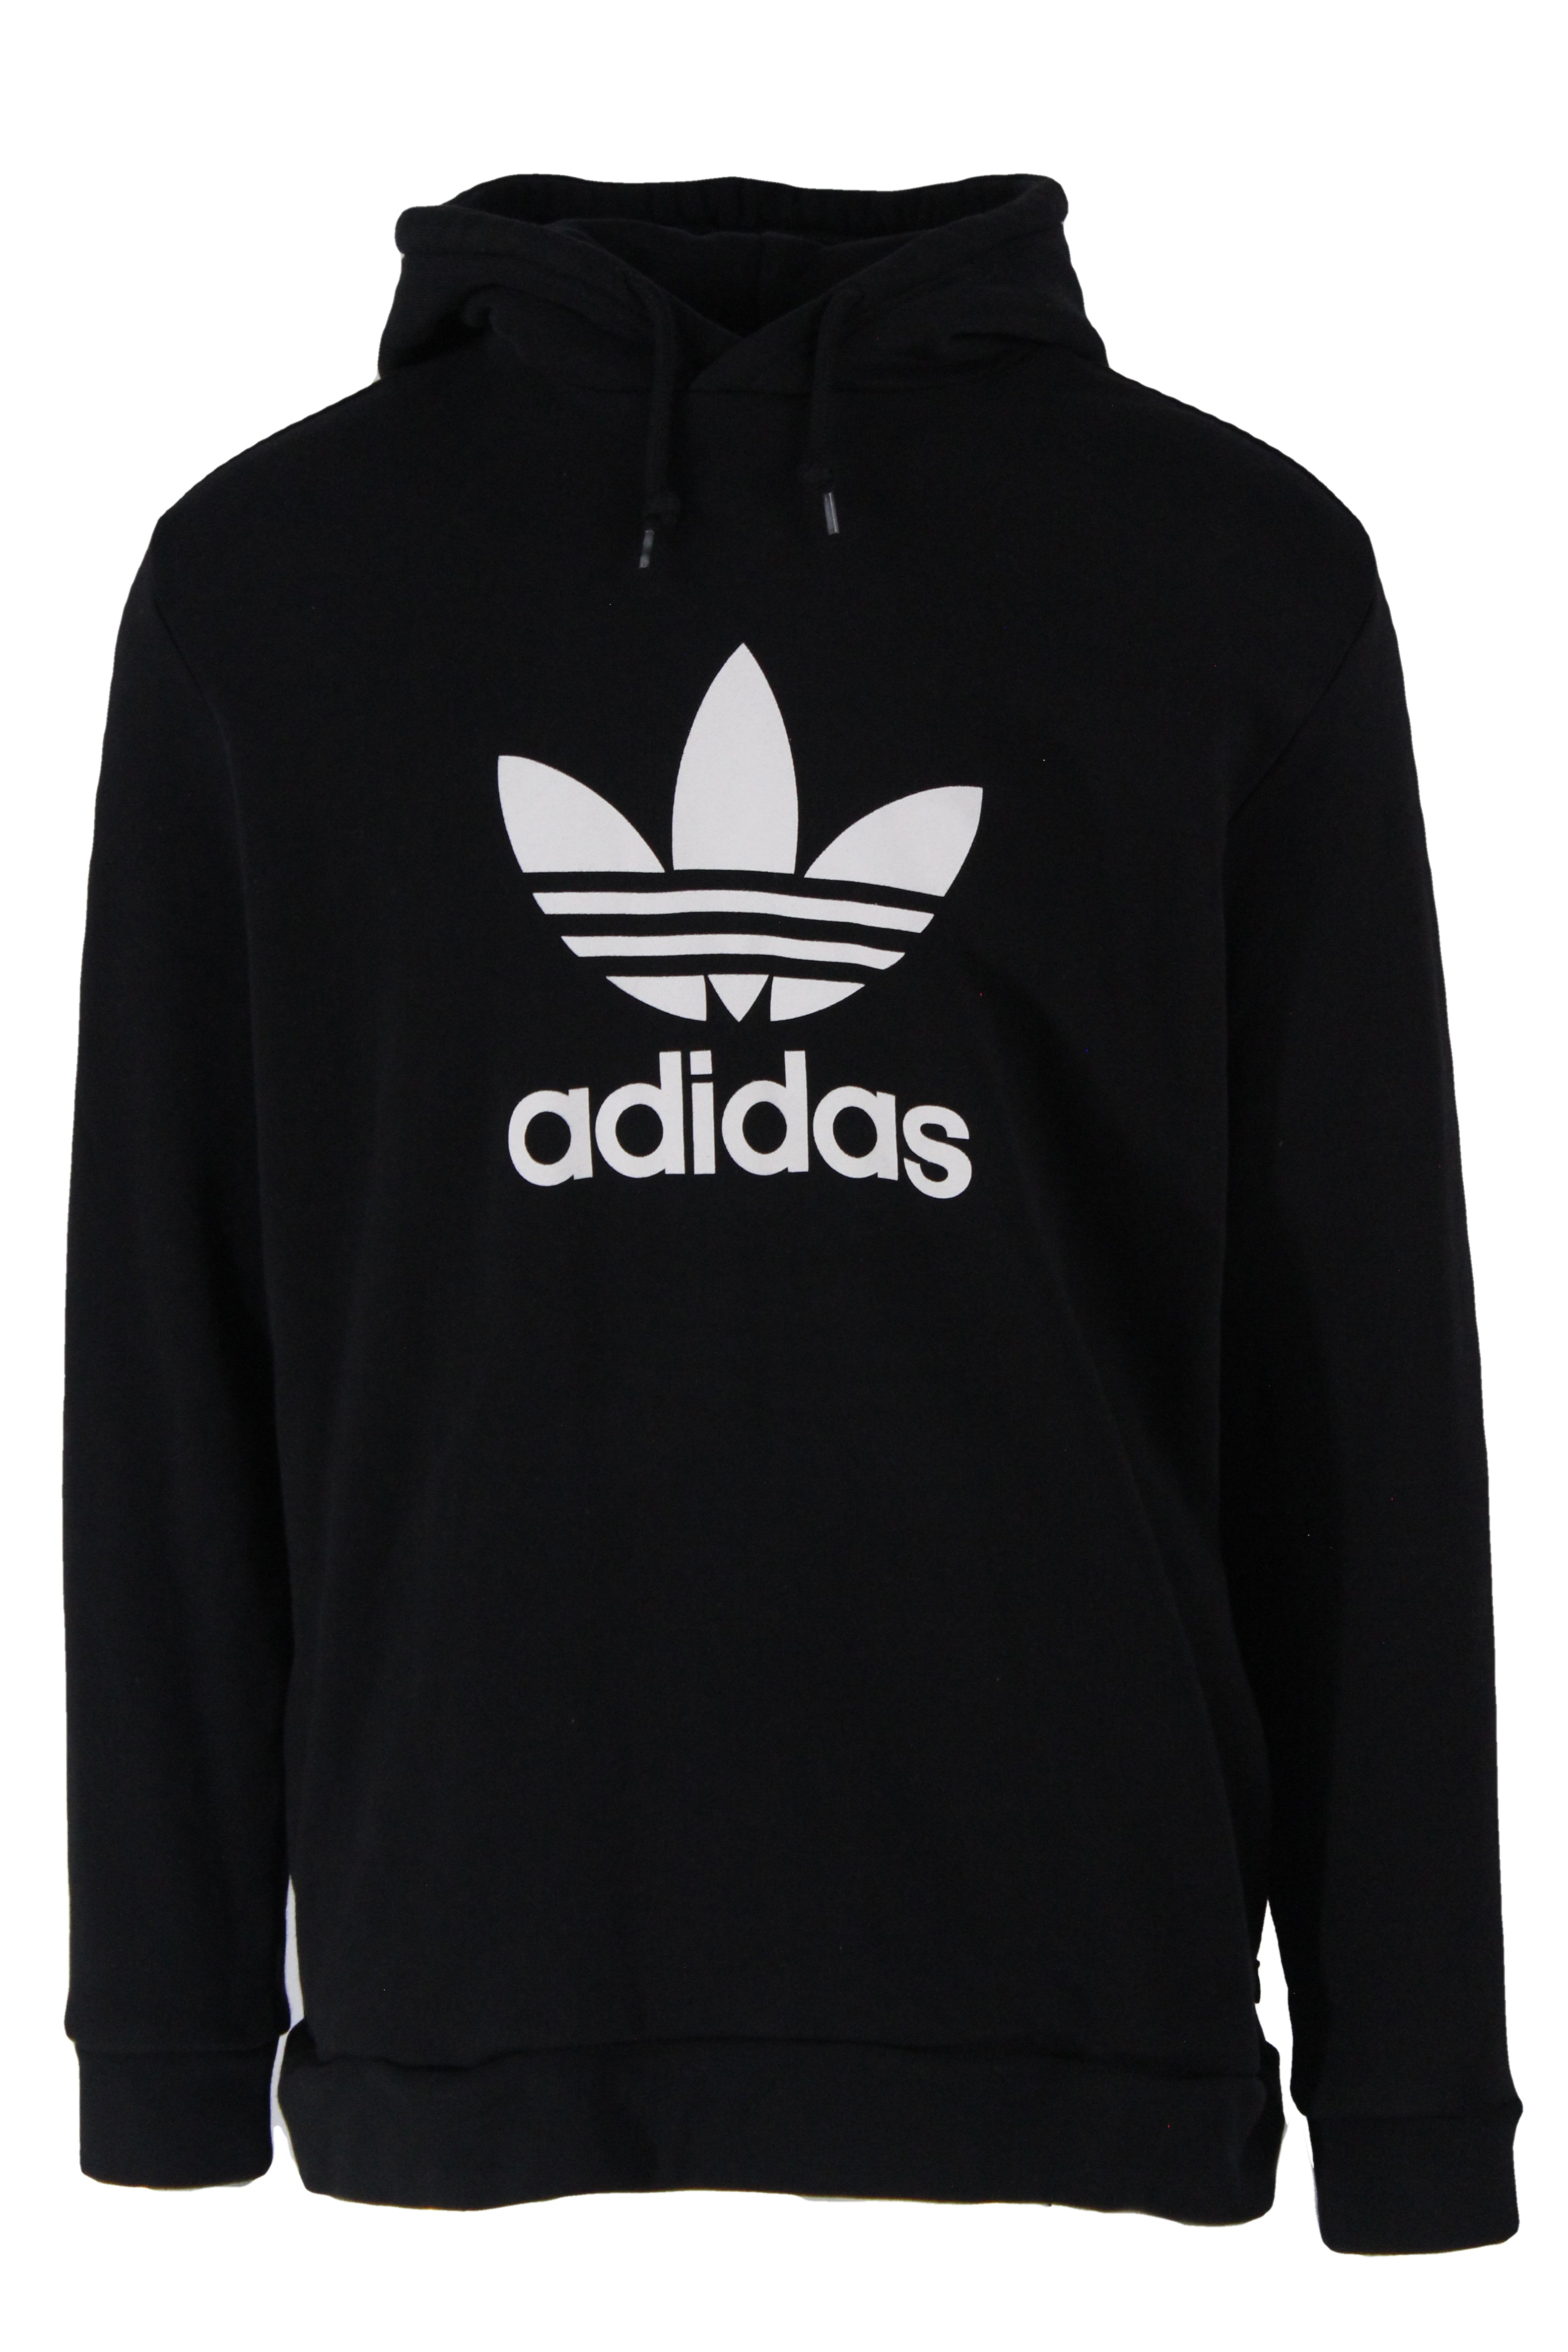 adidas black pullover cotton hoodie. features logo printed at chest, zip hand pockets at sides, drawstrings at hood with ribbed hem and cuffs.